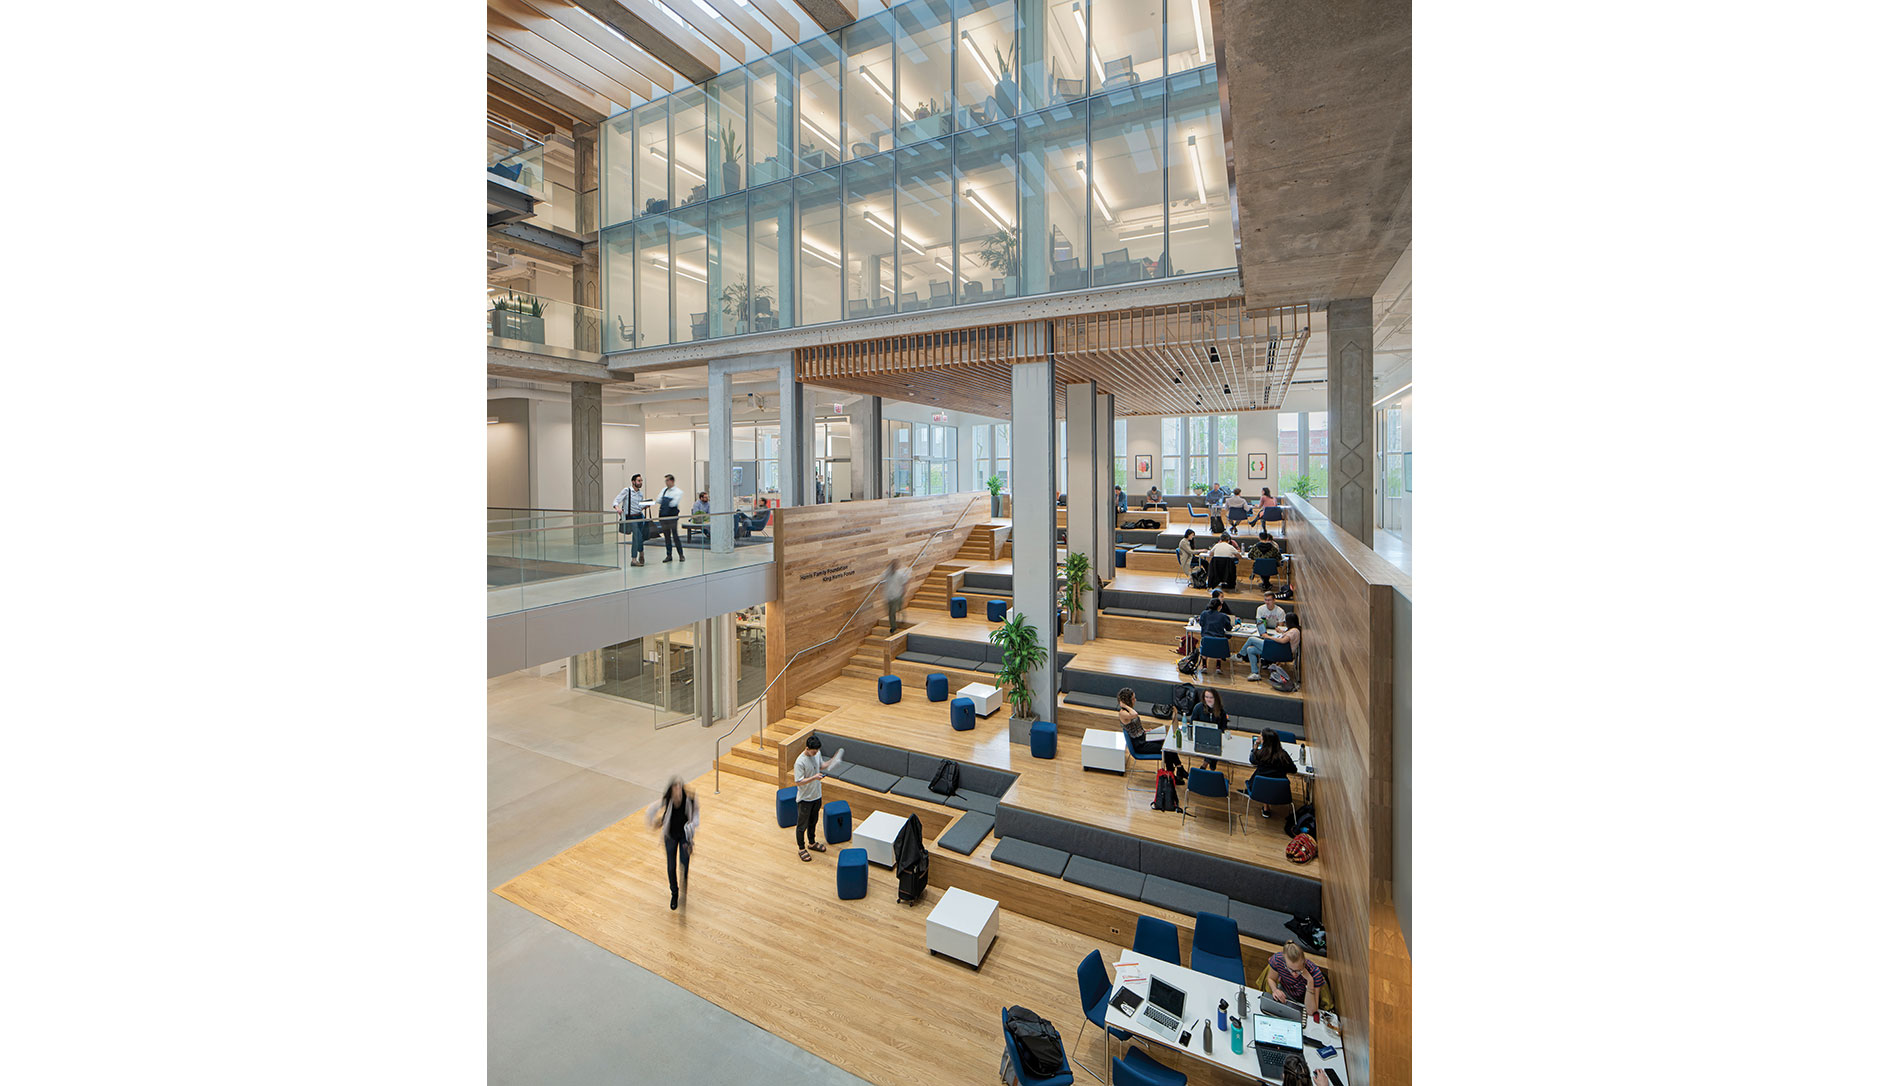 The three-story Harris Family Foundation King Harris Forum atrium required cutting through the building's central floors. A daylight harvesting systems helps marry natural lighting and LED fixtures to promote a healthy interior.